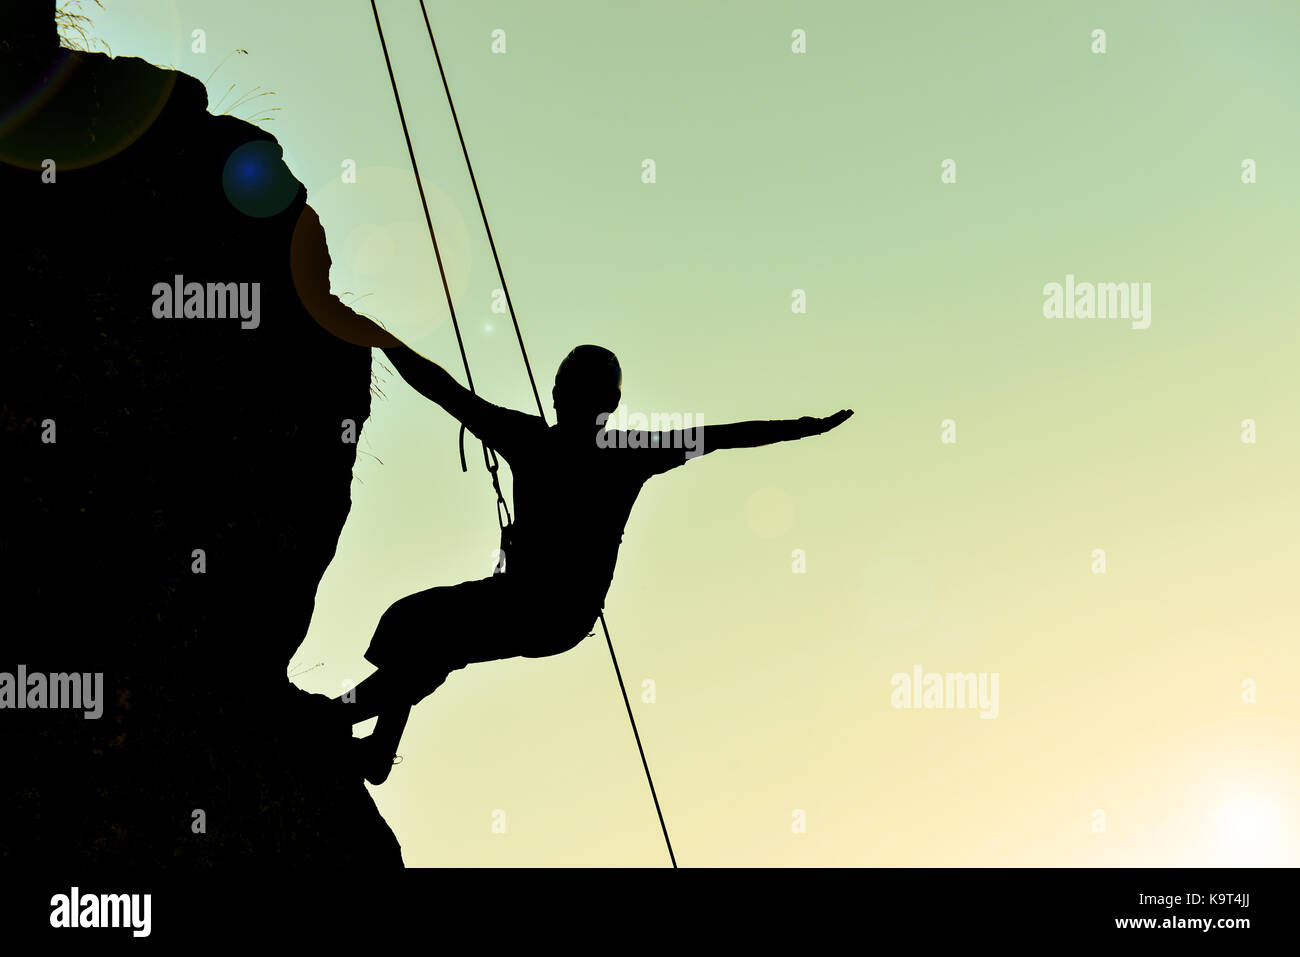 cliff the climber silhouette - Stock Image